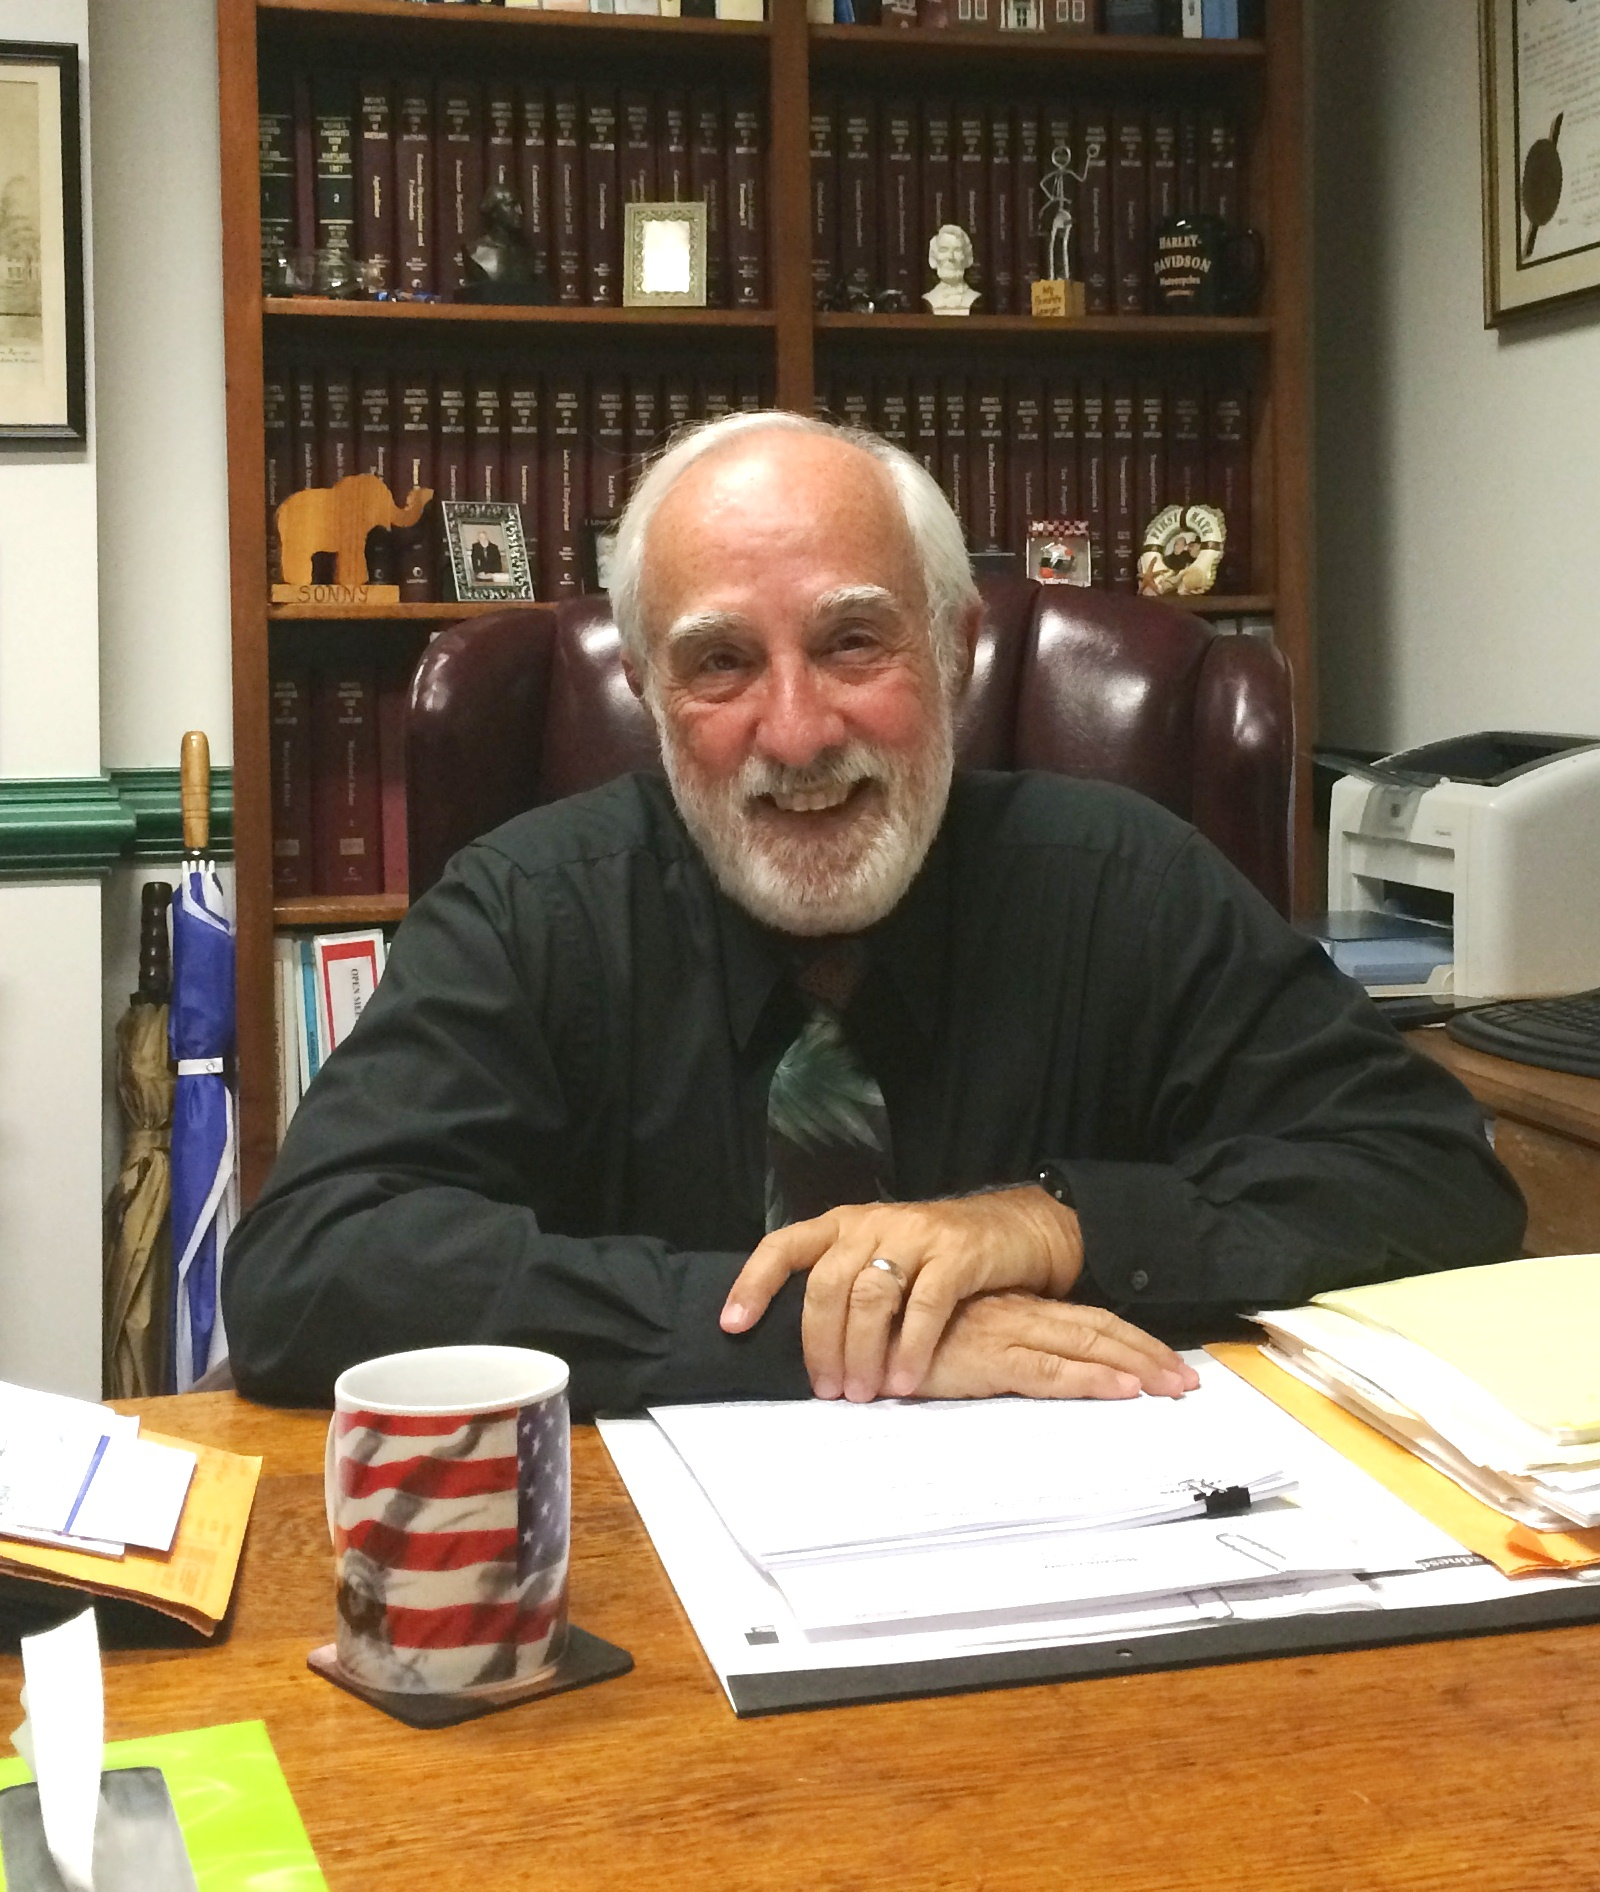 Bloxom has served as Worcester County's counsel for eight years. Photo by Charlene Sharpe